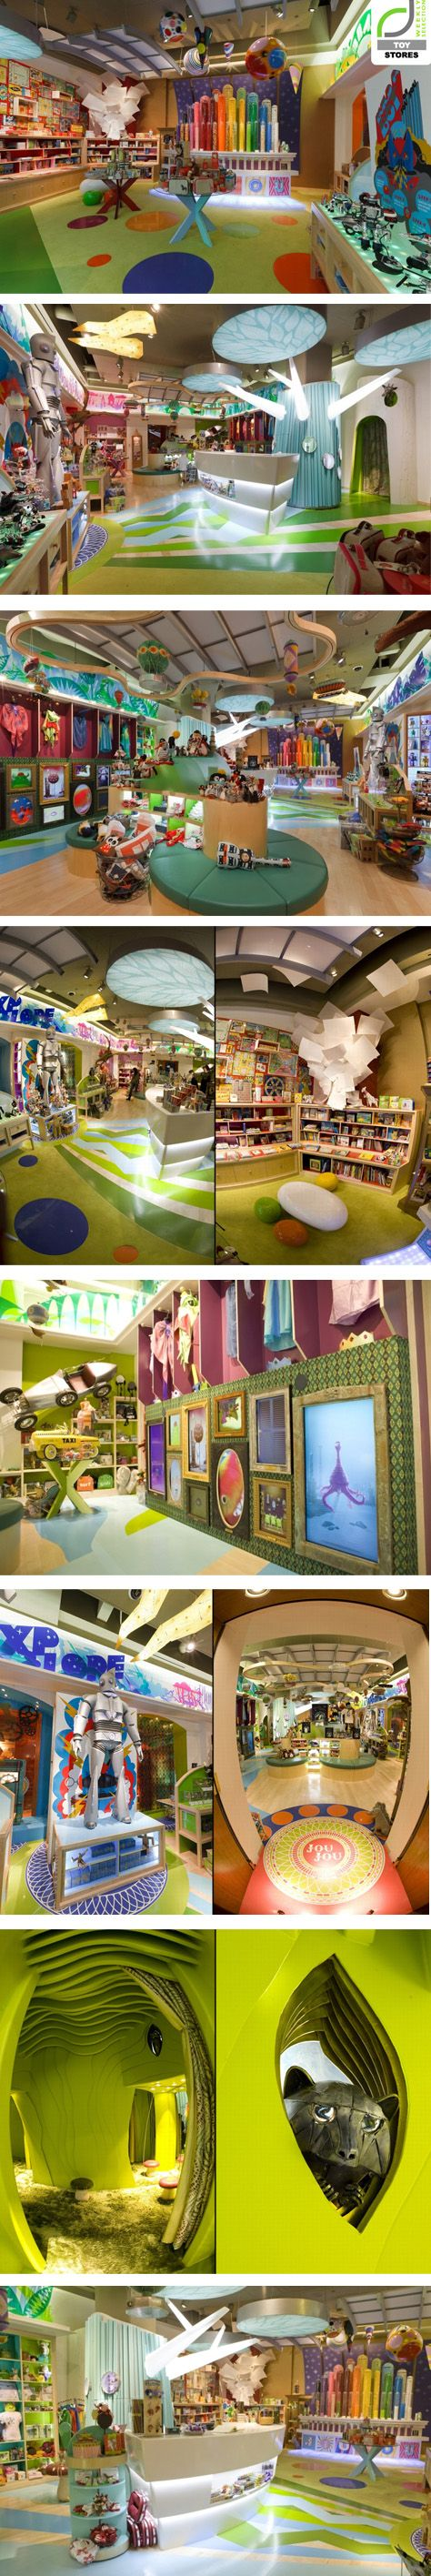 Best place in the entire universe!!!!!!!!!!!!! I need to go there right now